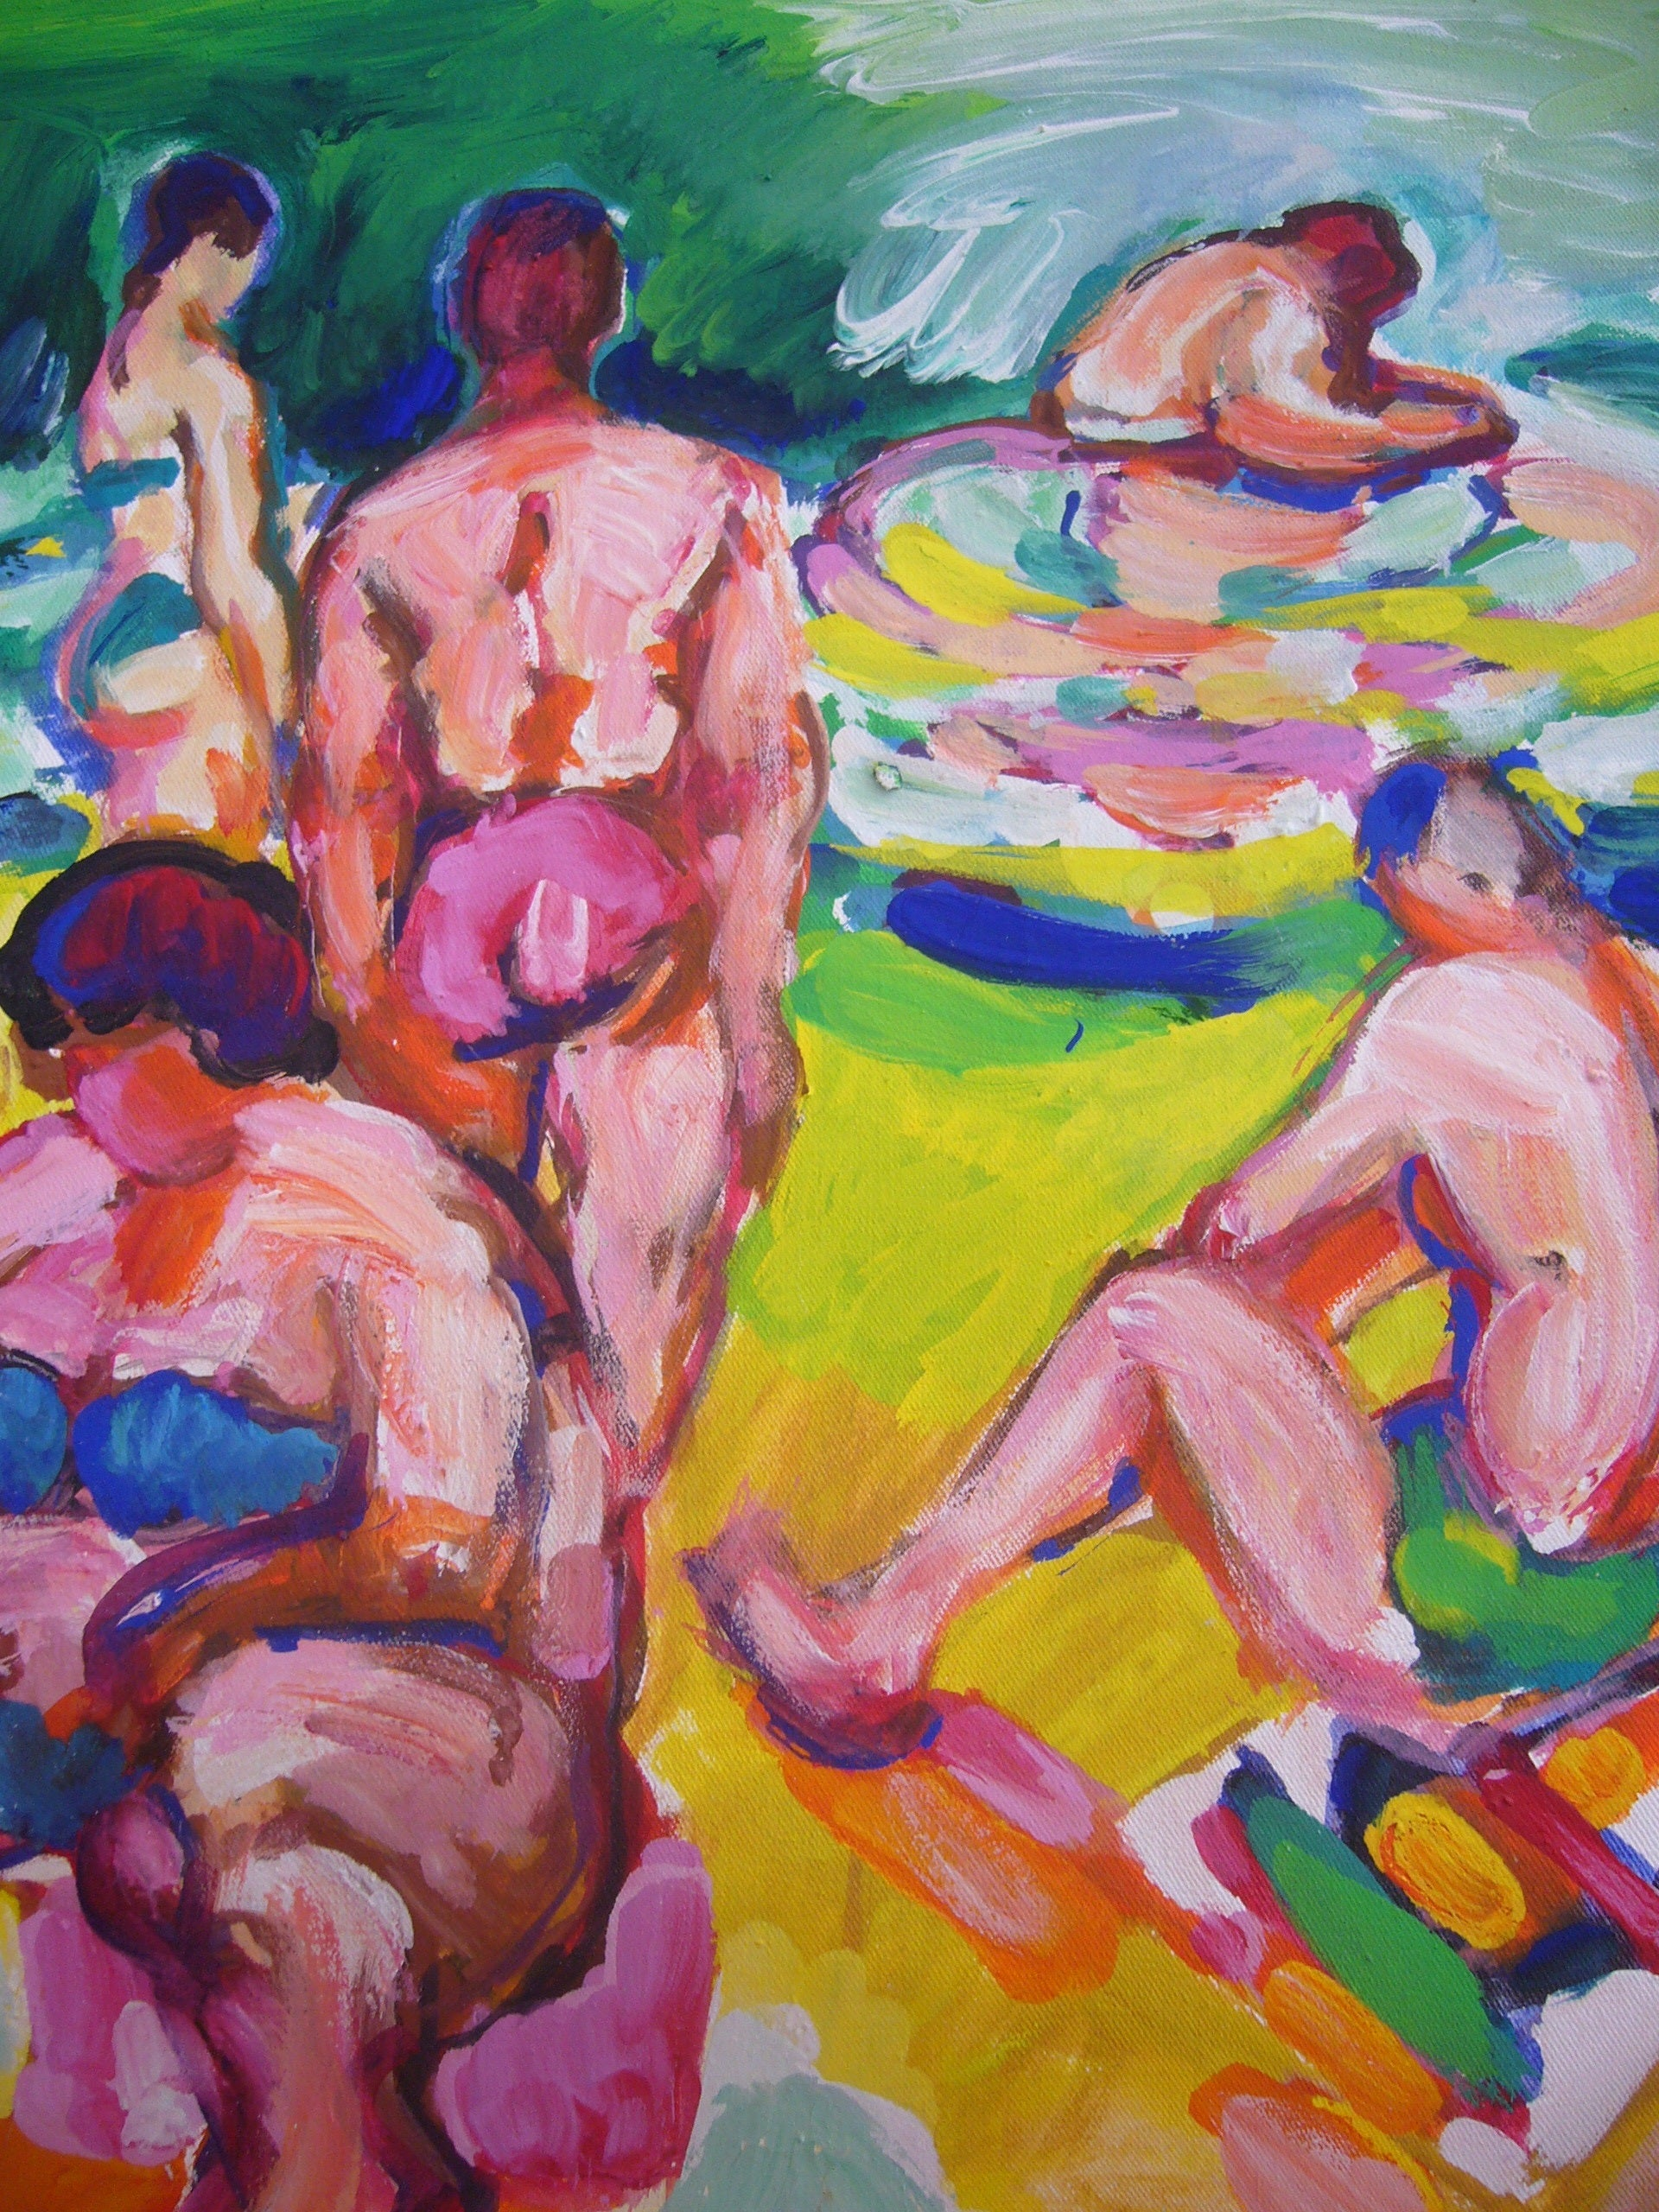 Bathers and The Green Sea